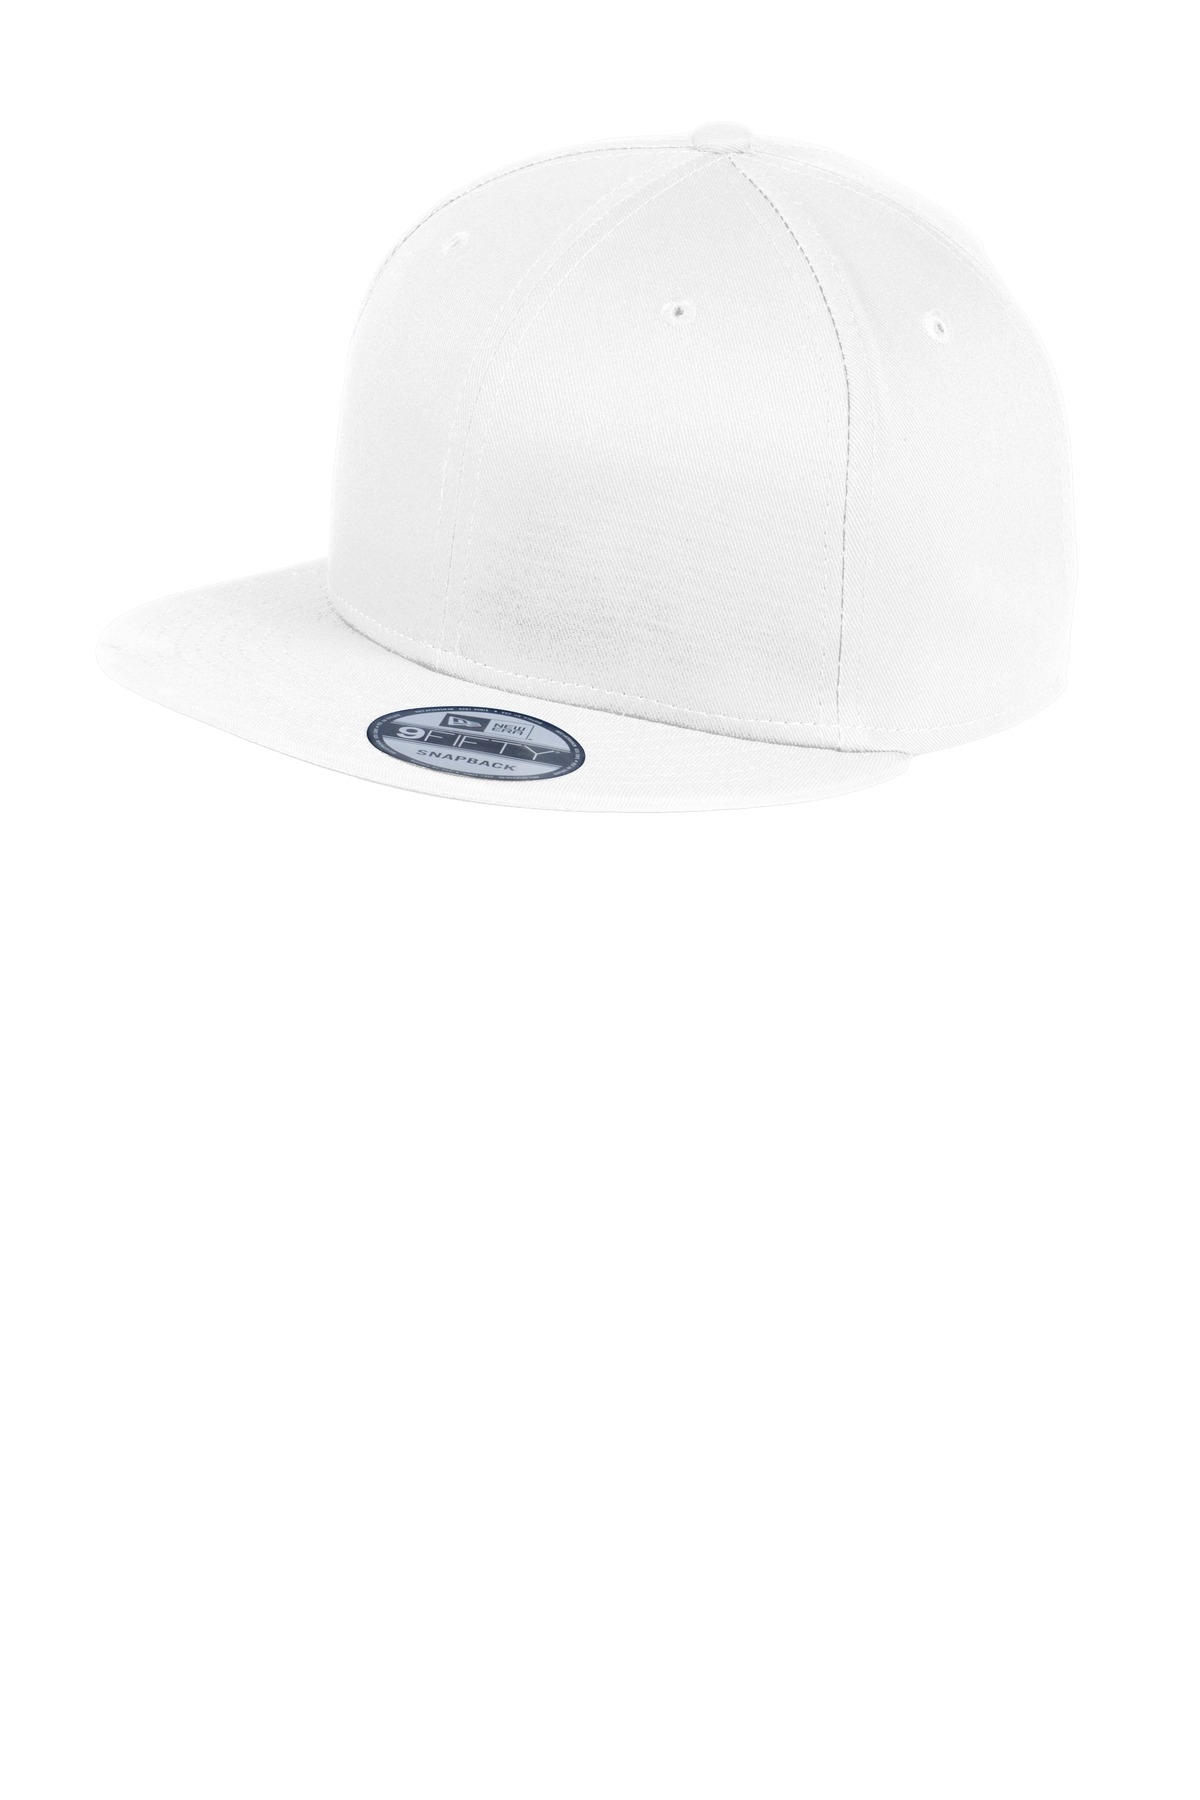 New Era ®  - Flat Bill Snapback Cap. NE400 - White